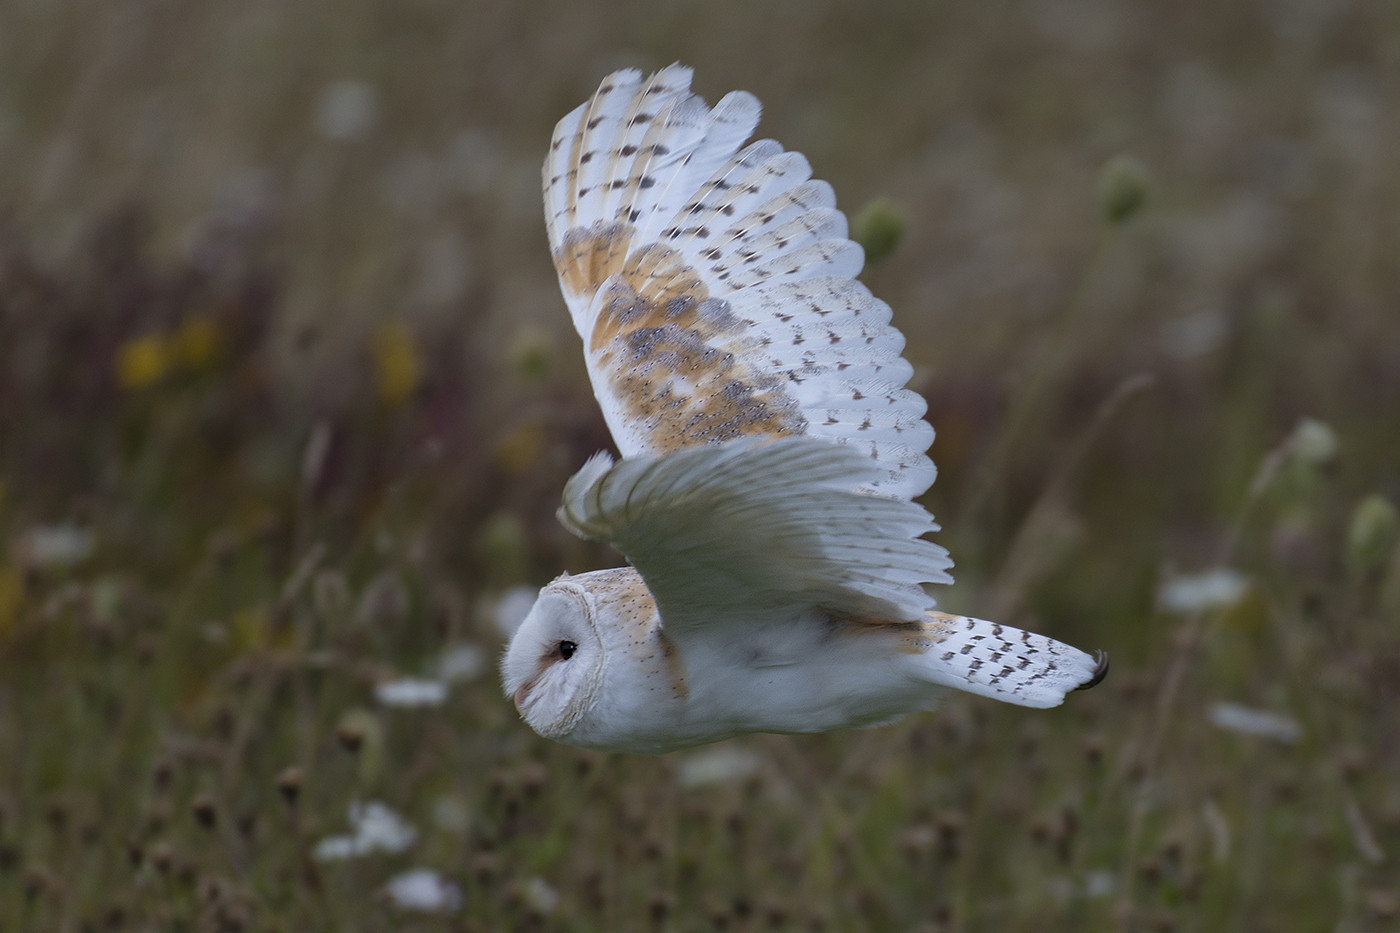 16 BARN OWL IN FLIGHT by Alan Cork